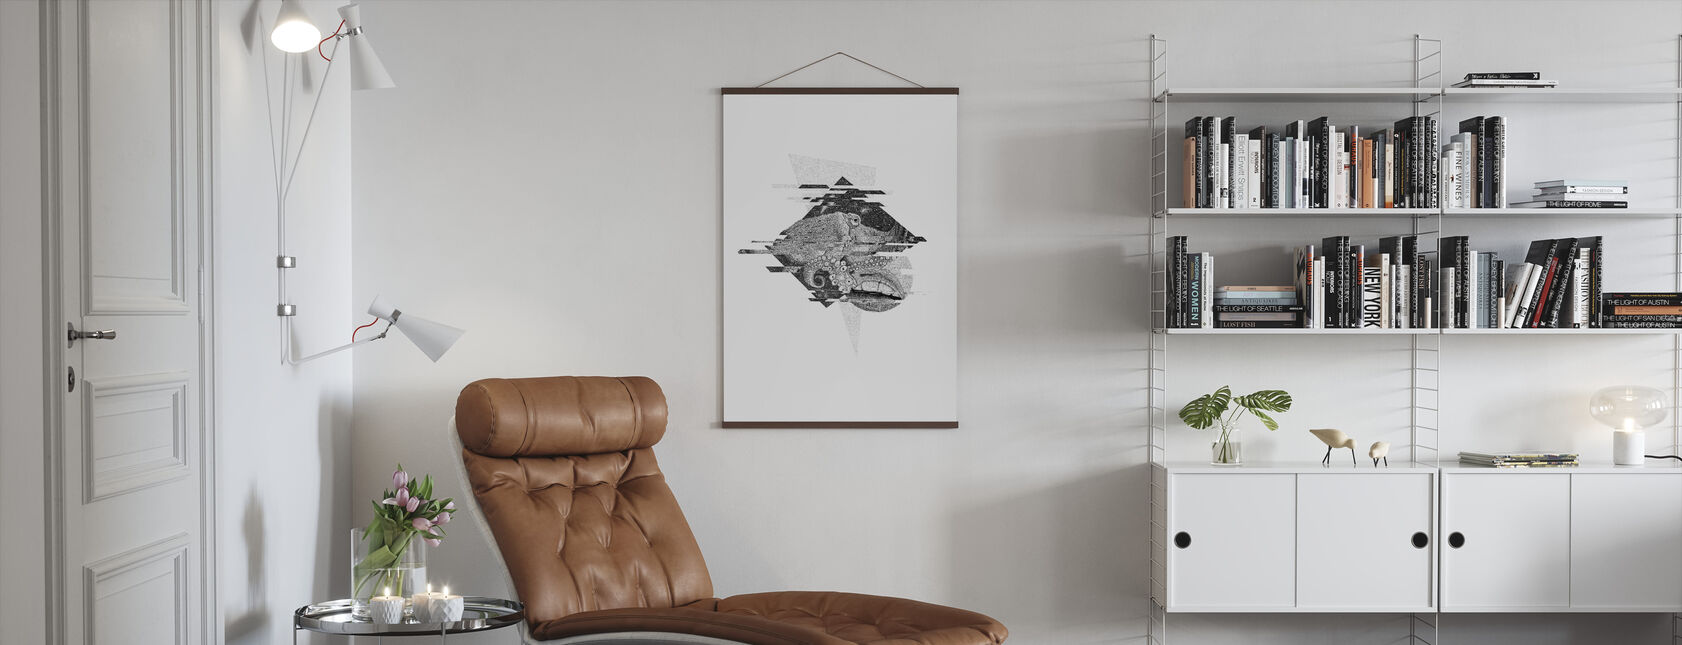 Interrupted Universe I - Poster - Living Room